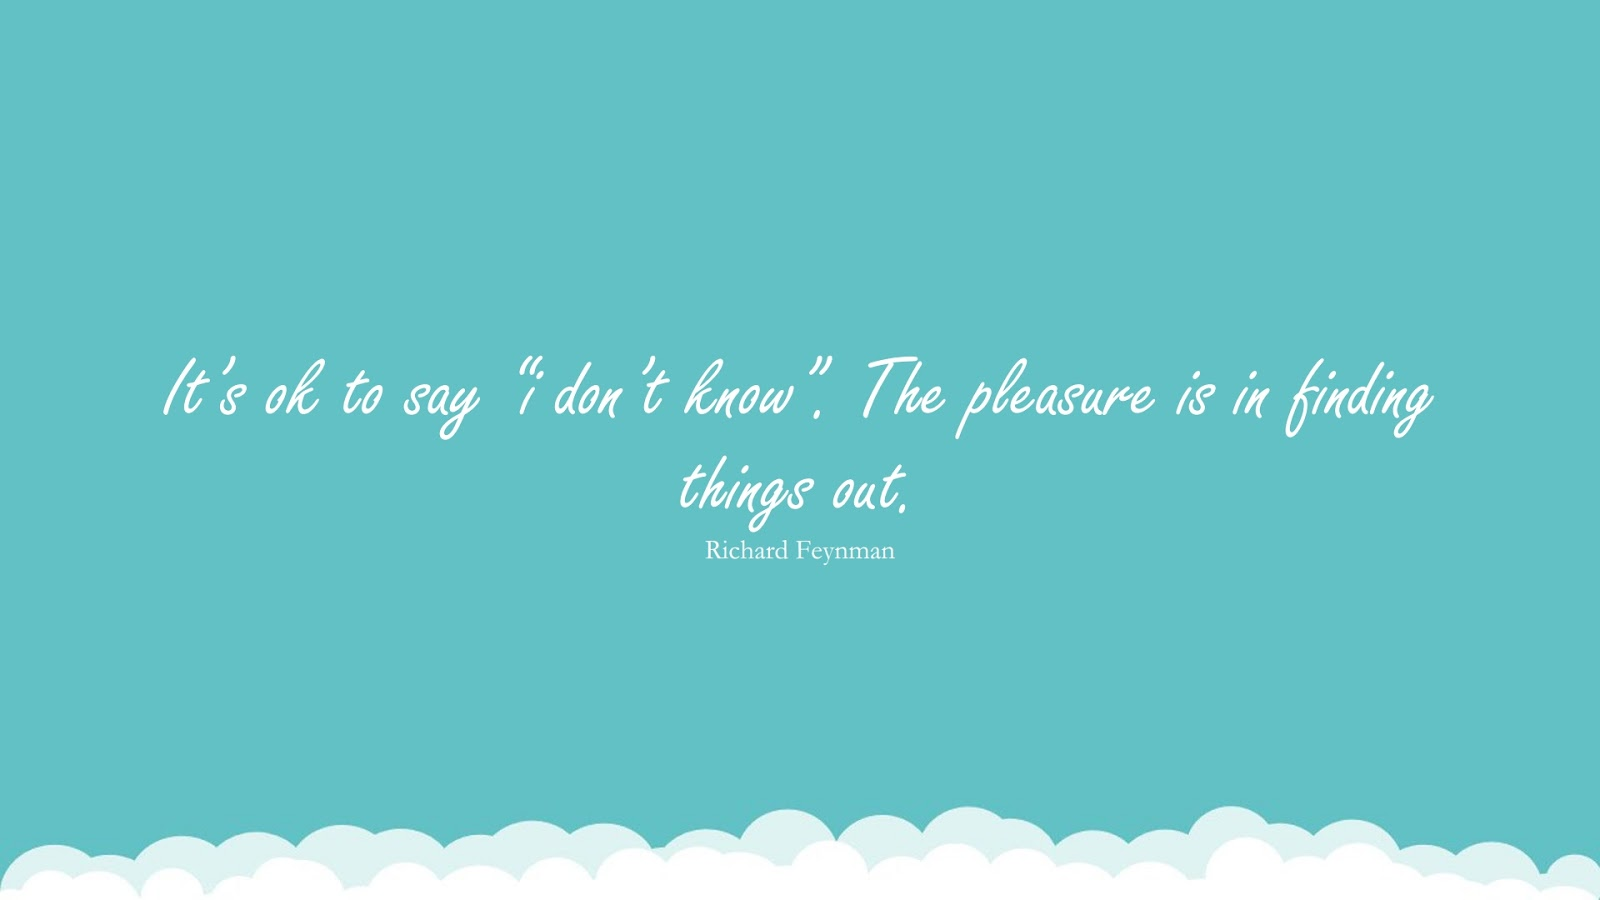 """It's ok to say """"i don't know"""". The pleasure is in finding things out. (Richard Feynman);  #EncouragingQuotes"""